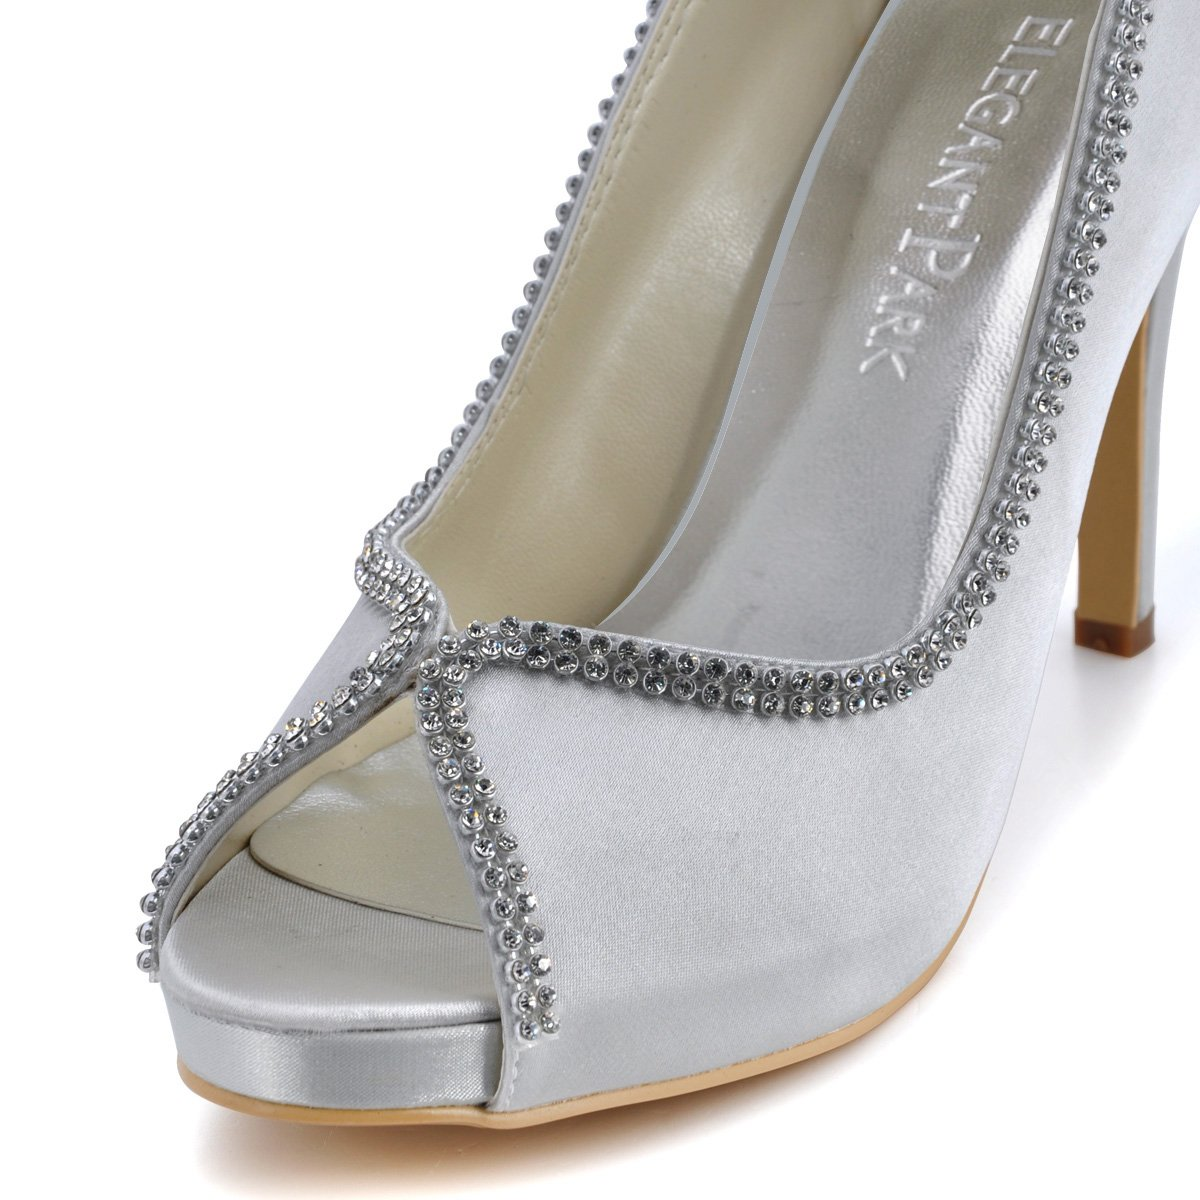 ElegantPark EP11083 Rhinestones Women Pumps Peep Toe Rhinestones EP11083 Platform High Heel Satin Evening Wedding Dress Shoes B00ARD1YC8 7 B(M) US|Silver 0bed92